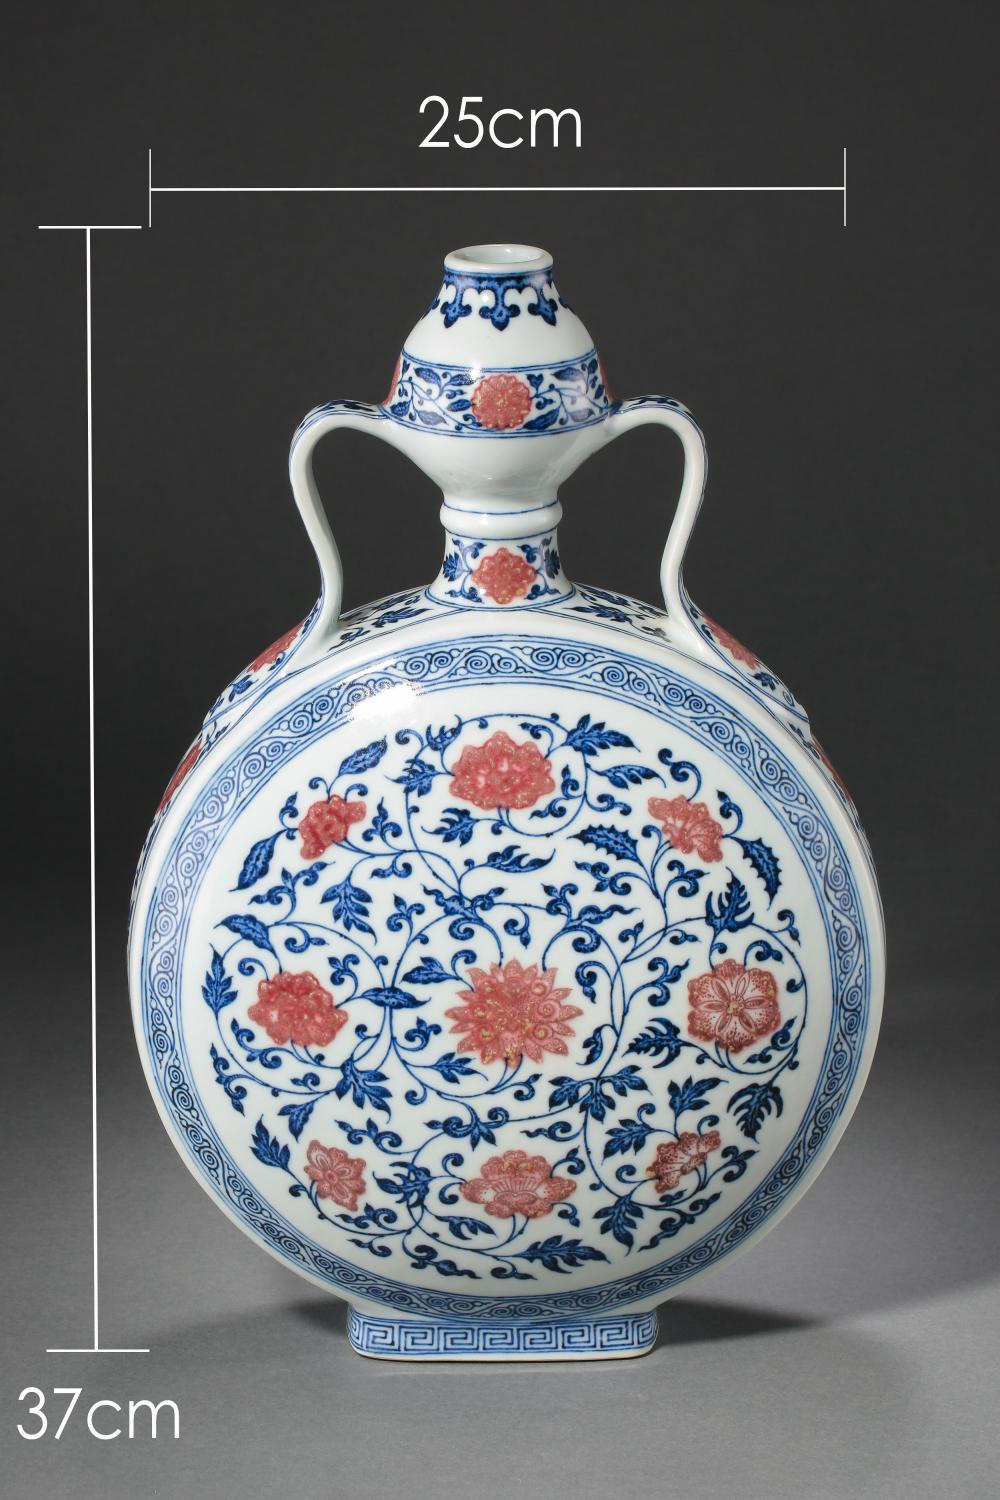 17TH CENTURY QING DYNASTY QIANLONG, CHINESE UNDERGLAZE RED DOUBLE-EARED FLASK VASE